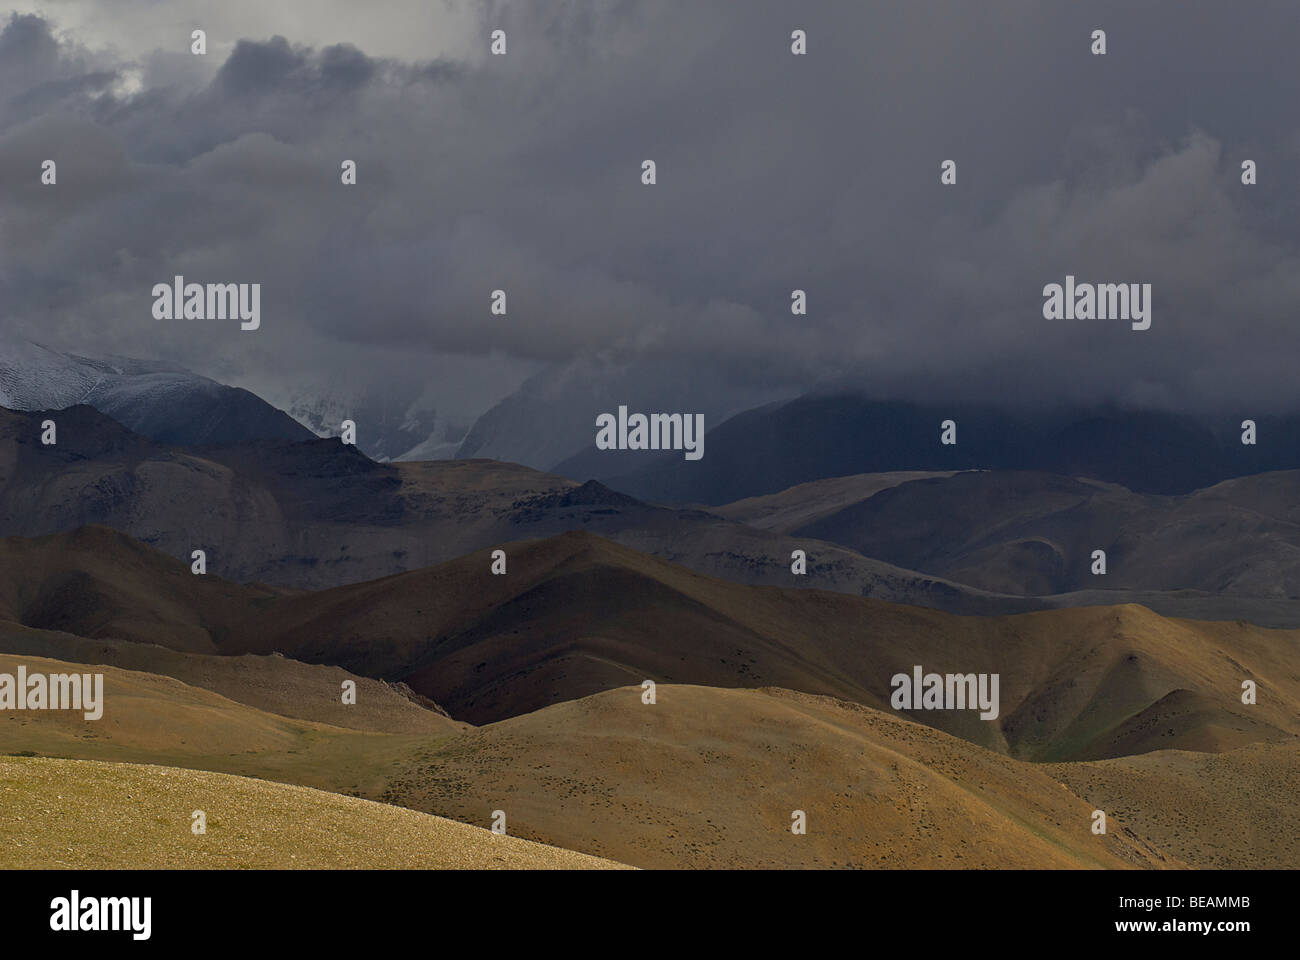 Stormclouds over the plateau. Tibetan landscape with hills and mountains . Approaching Nepal. Tibet, China - Stock Image